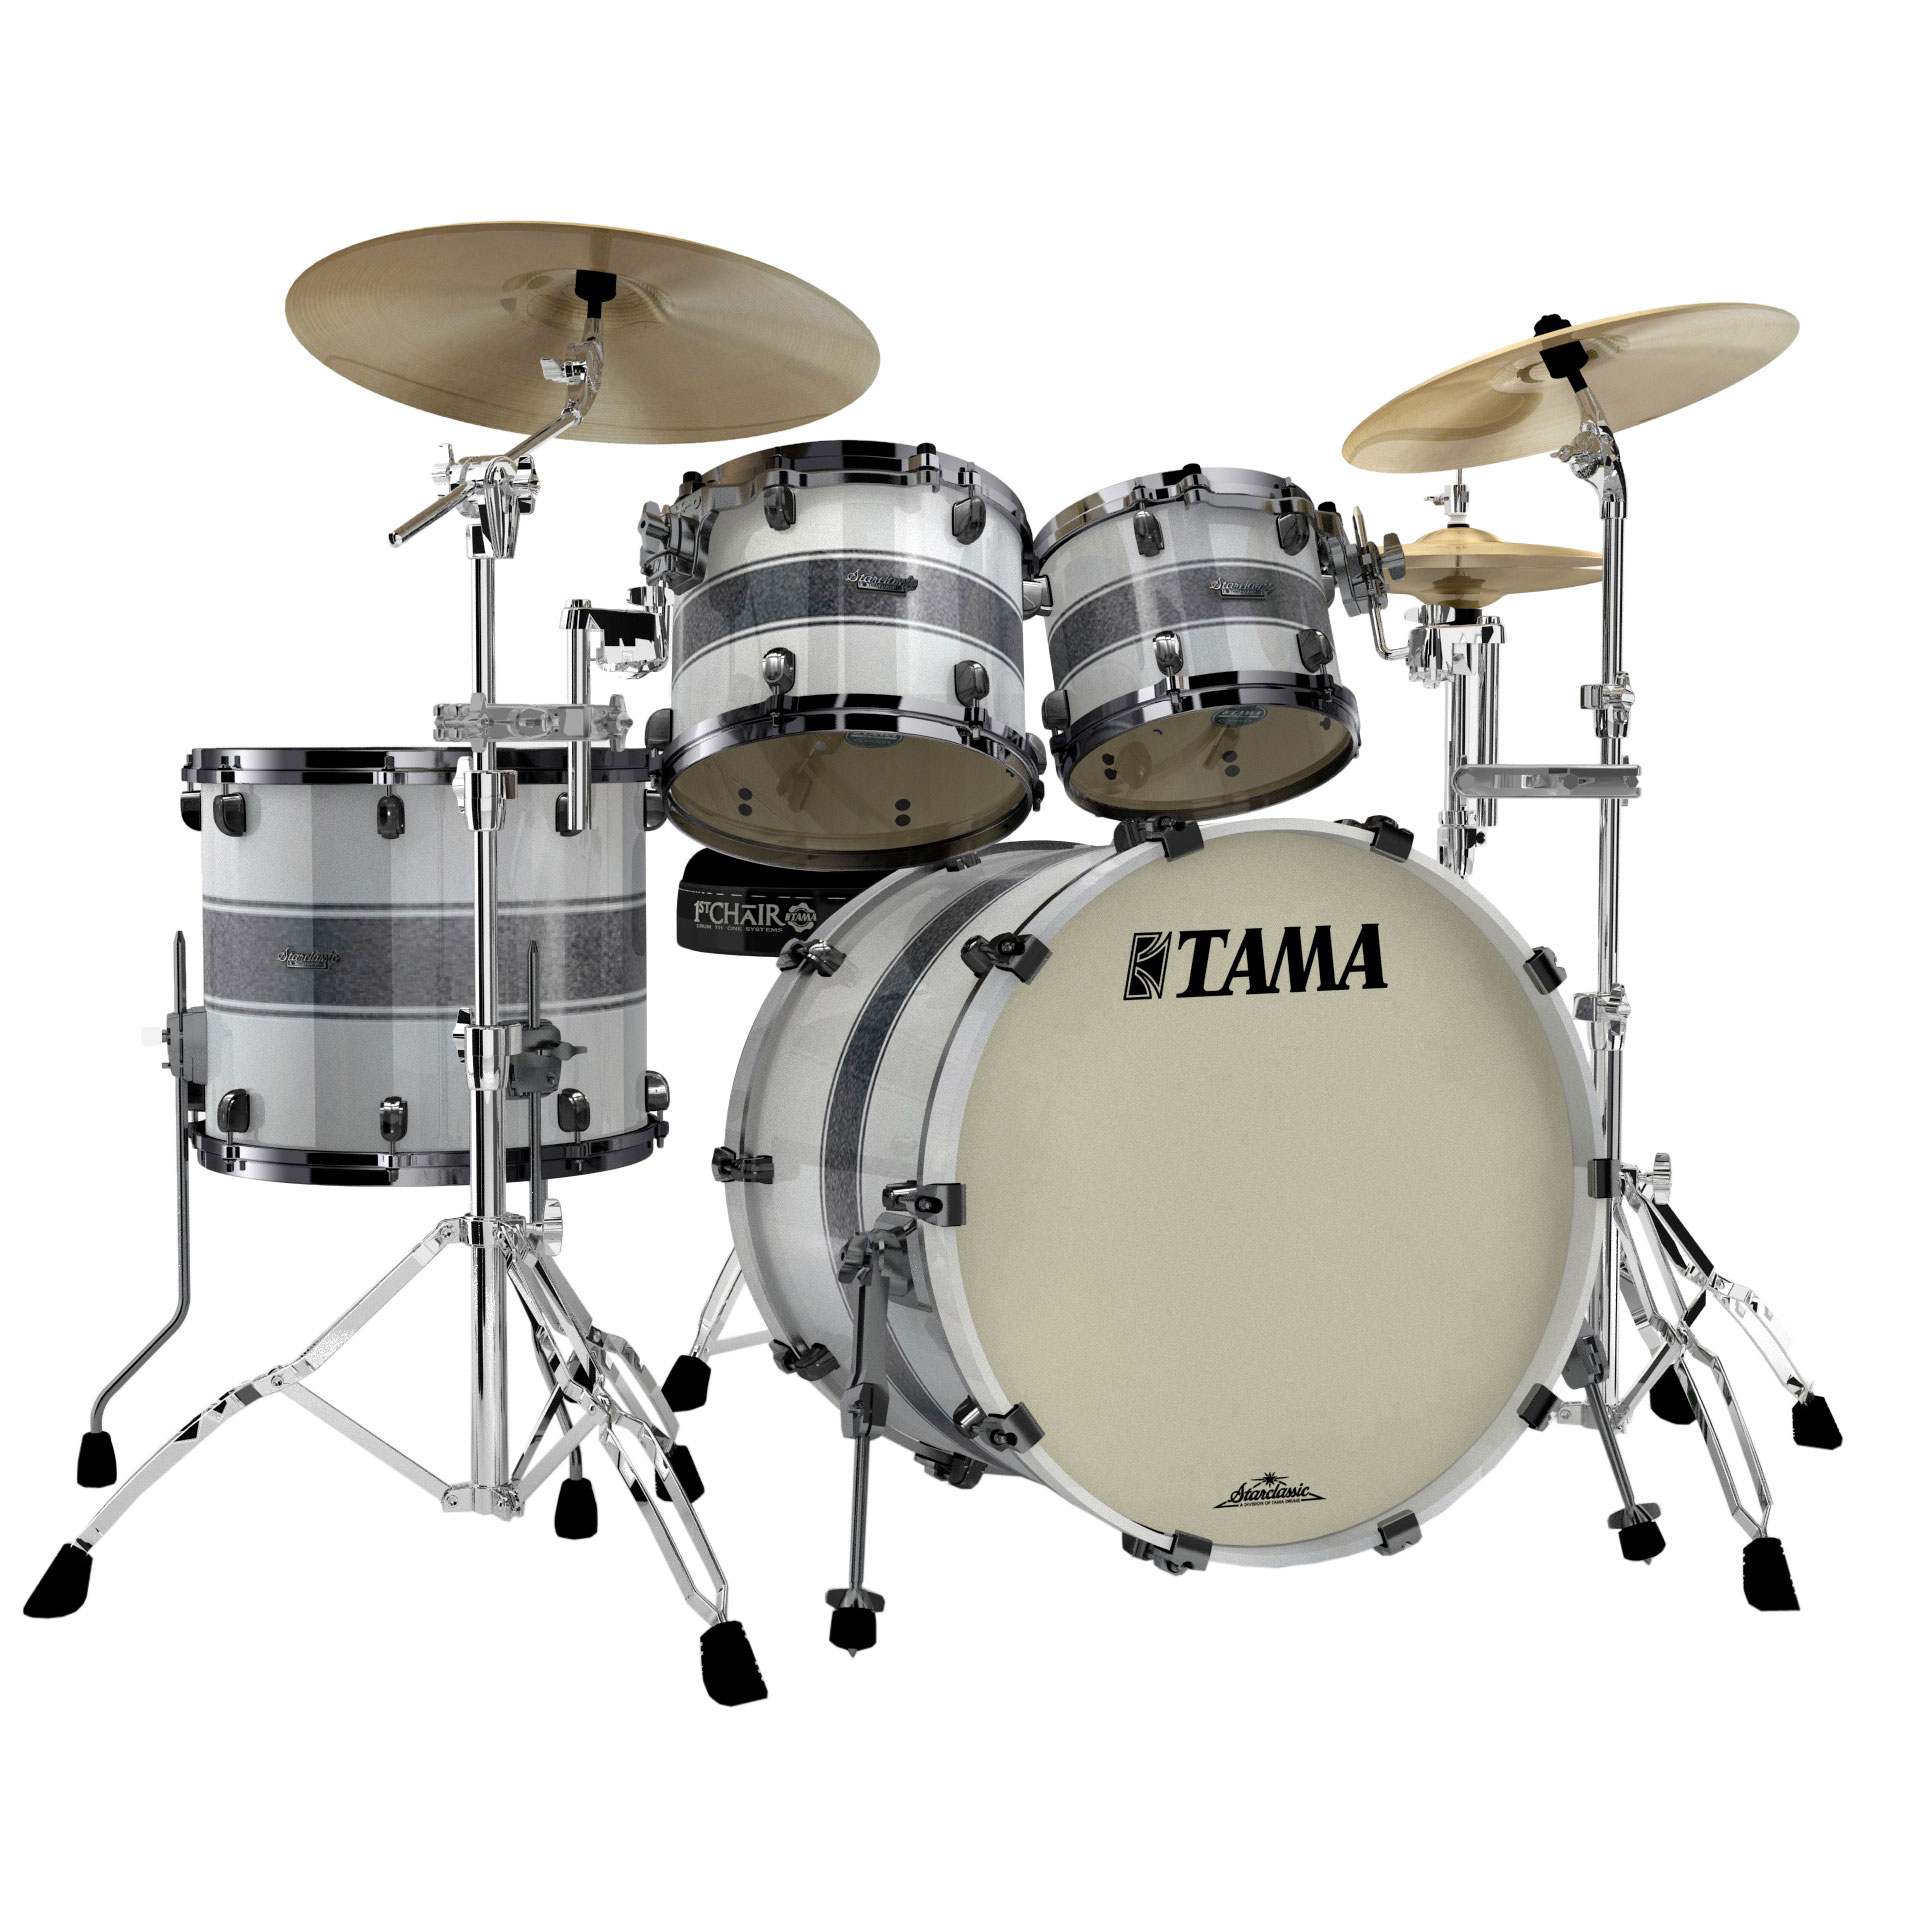 tama starclassic dating When tama changed the starclassic performer shell composition from 100 percent birch to a blend of birch and bubinga, many wondered if it would upgrade its superstar line shells to 100.